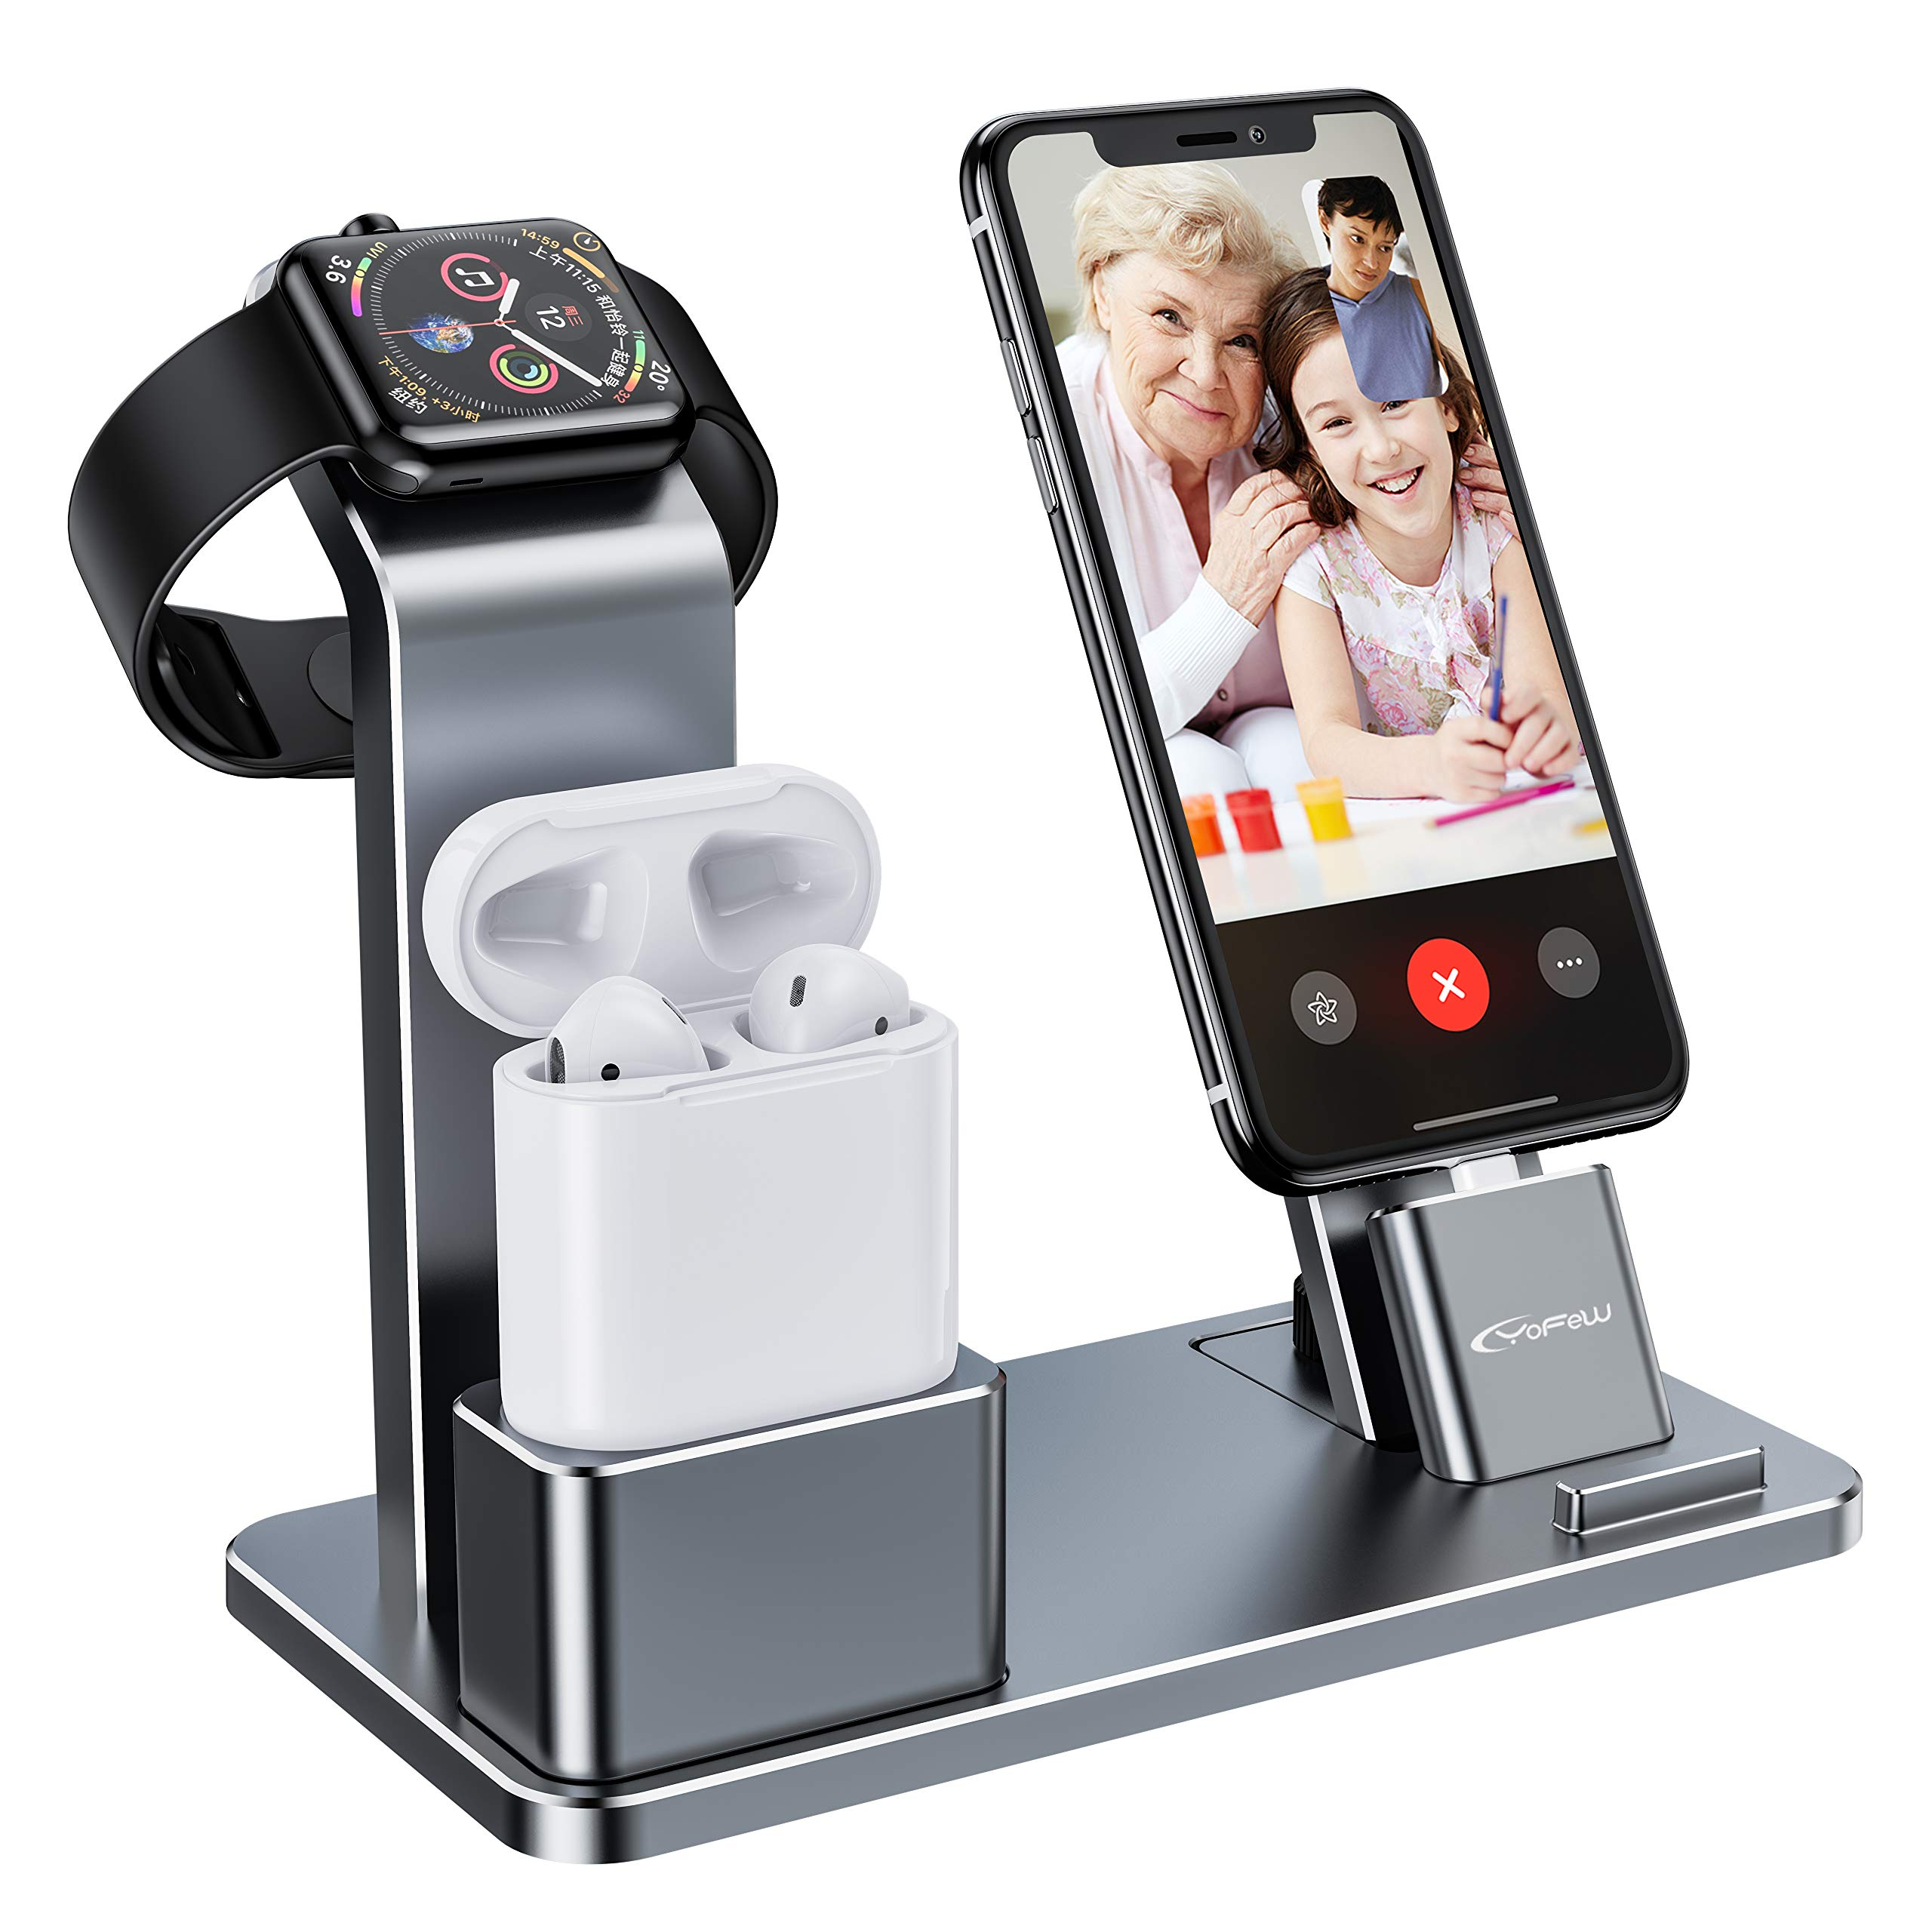 YoFeW Charging Stand for Apple Watch Charger Stand Aluminum Dock Holder Compatible for iWatch Apple Watch Series 4/3 / 2/1/ AirPods/iPhone X/XS/XS Ma /8 / 8Plus / 7/7 Plus /6S /6S Plus by YoFeW